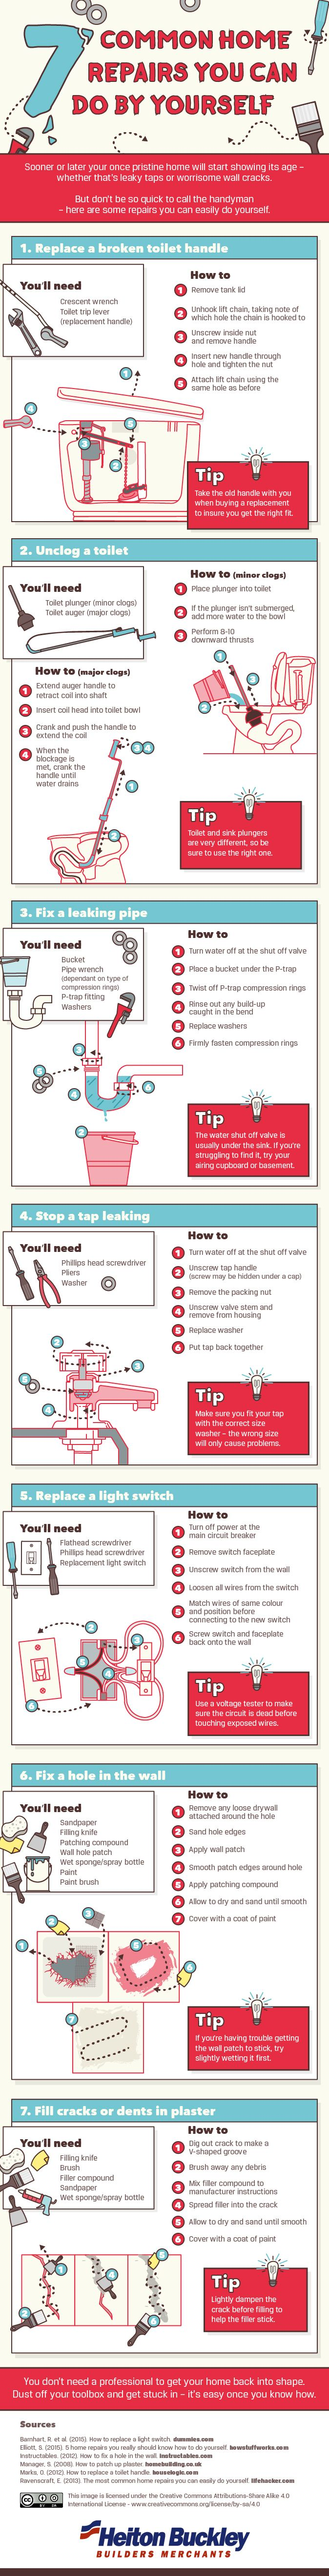 This is a fantastic infographic that showcases 7 common home repairs that you too can do yourself. Because all home need care and attention. If you think you have the skills to perform some of these projects yourself, here are some tips on how to get these projects completed. The organization that created this infographic, u2026